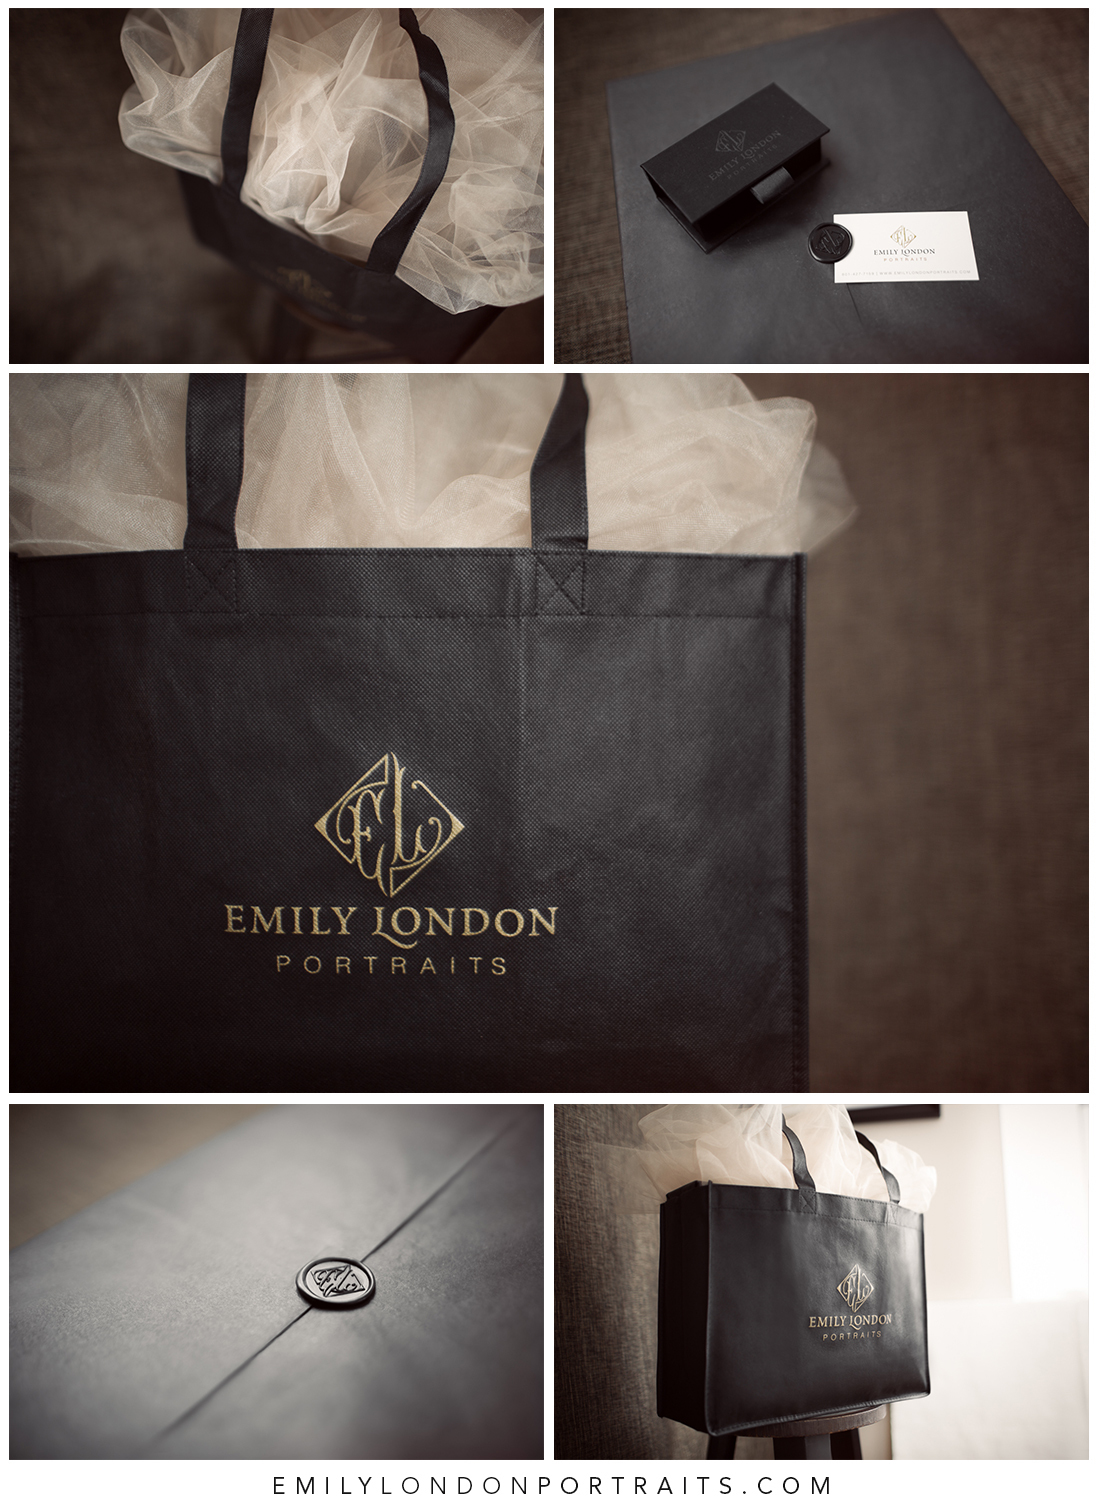 The beautiful packaging from Emily London Portraits in Salt Lake City.